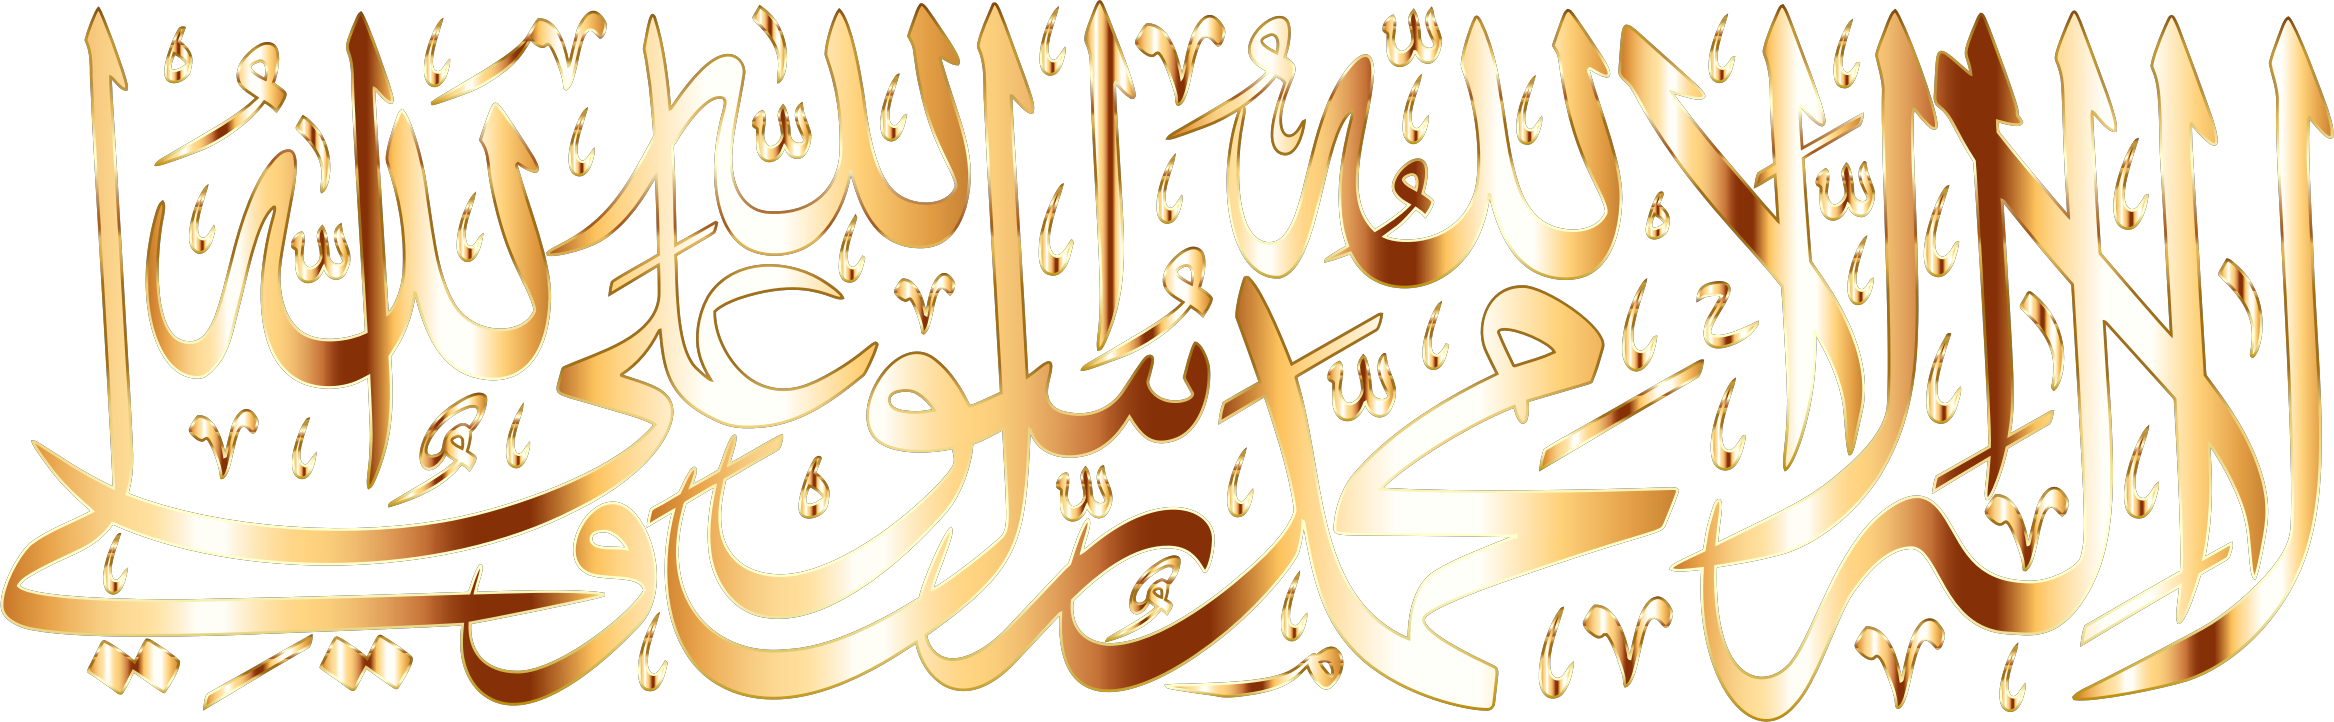 Gold Shahada Kalima Calligraphy No Background by GDJ